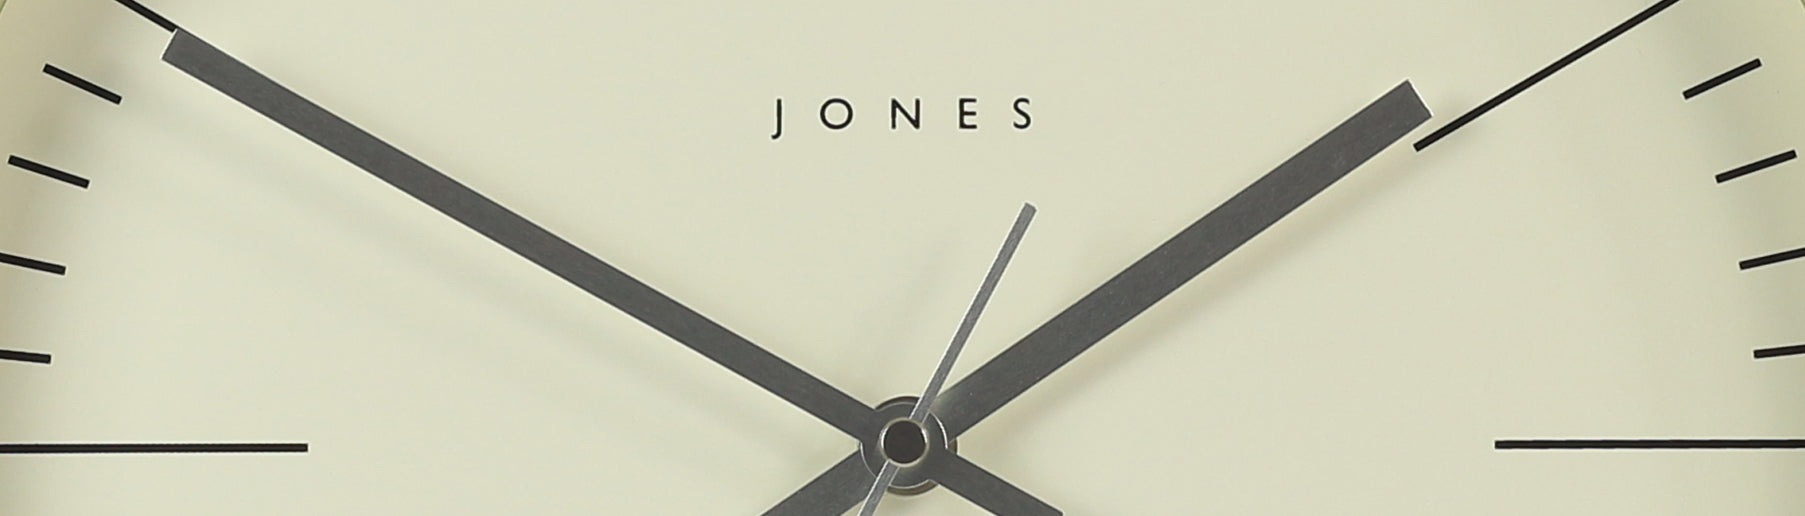 Jones Clocks. I f you have any queries we're happy to help.